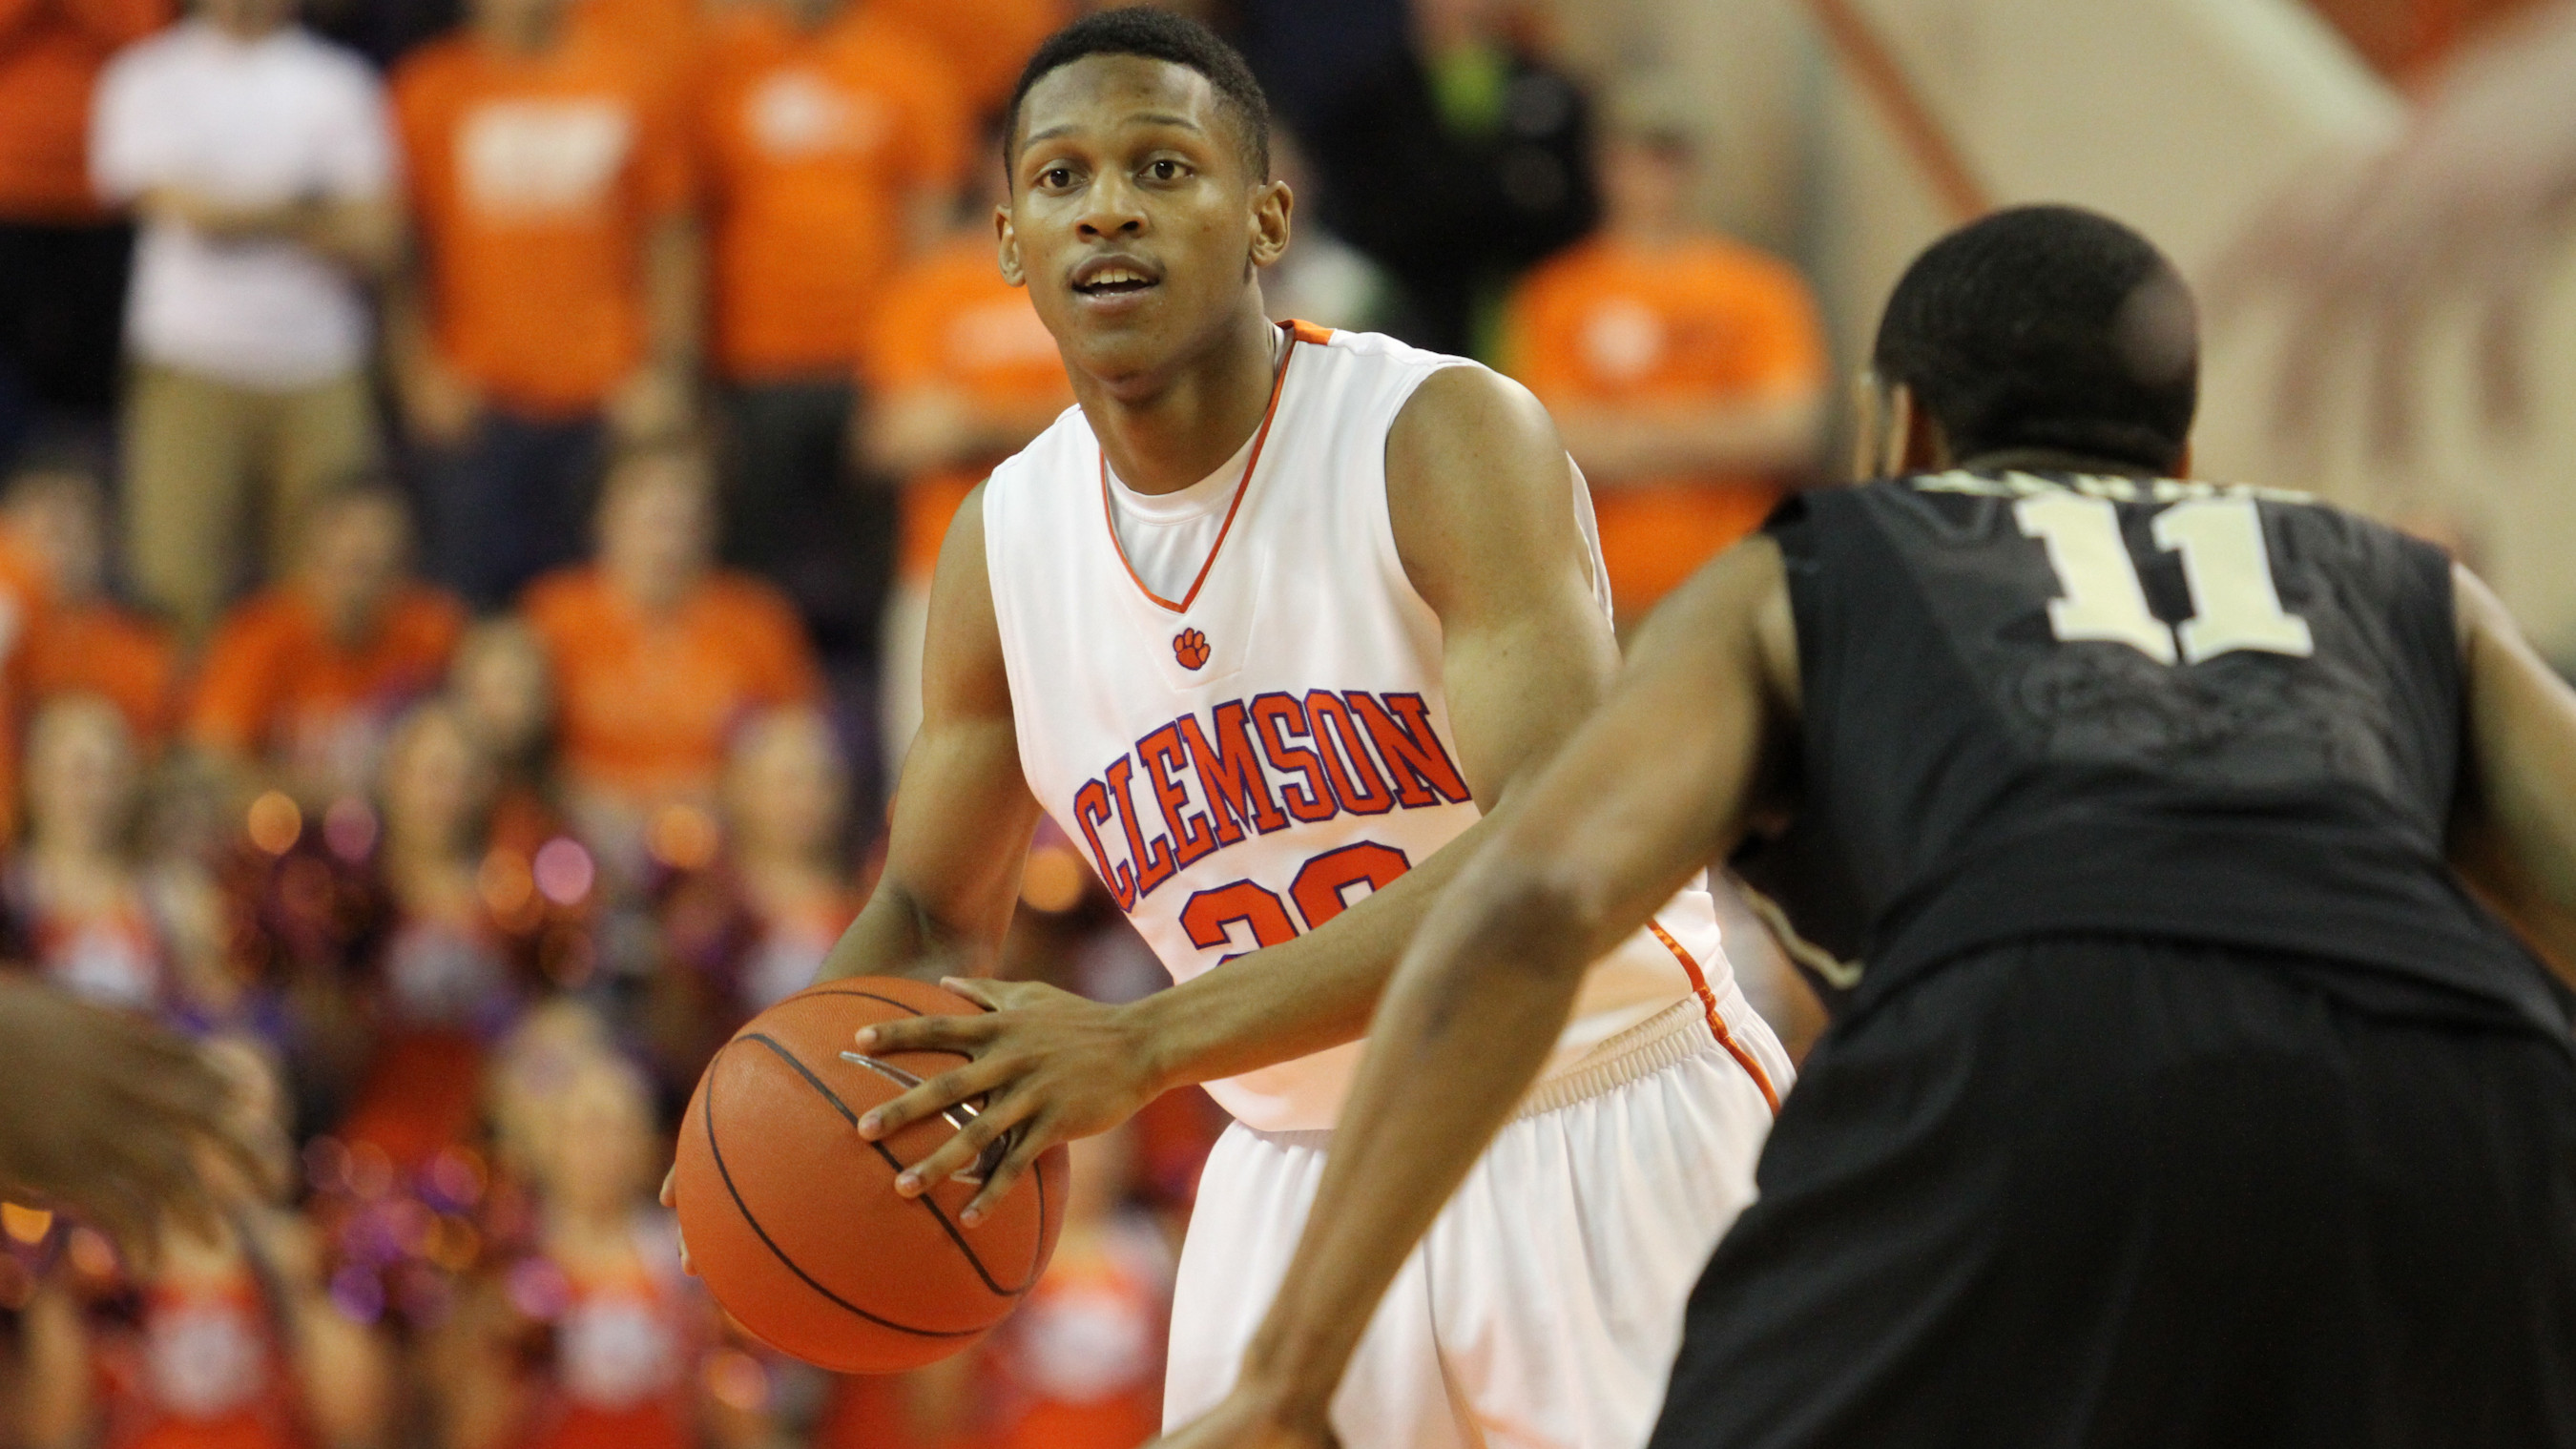 Clemson to Play Host to NC State Sunday at Littlejohn